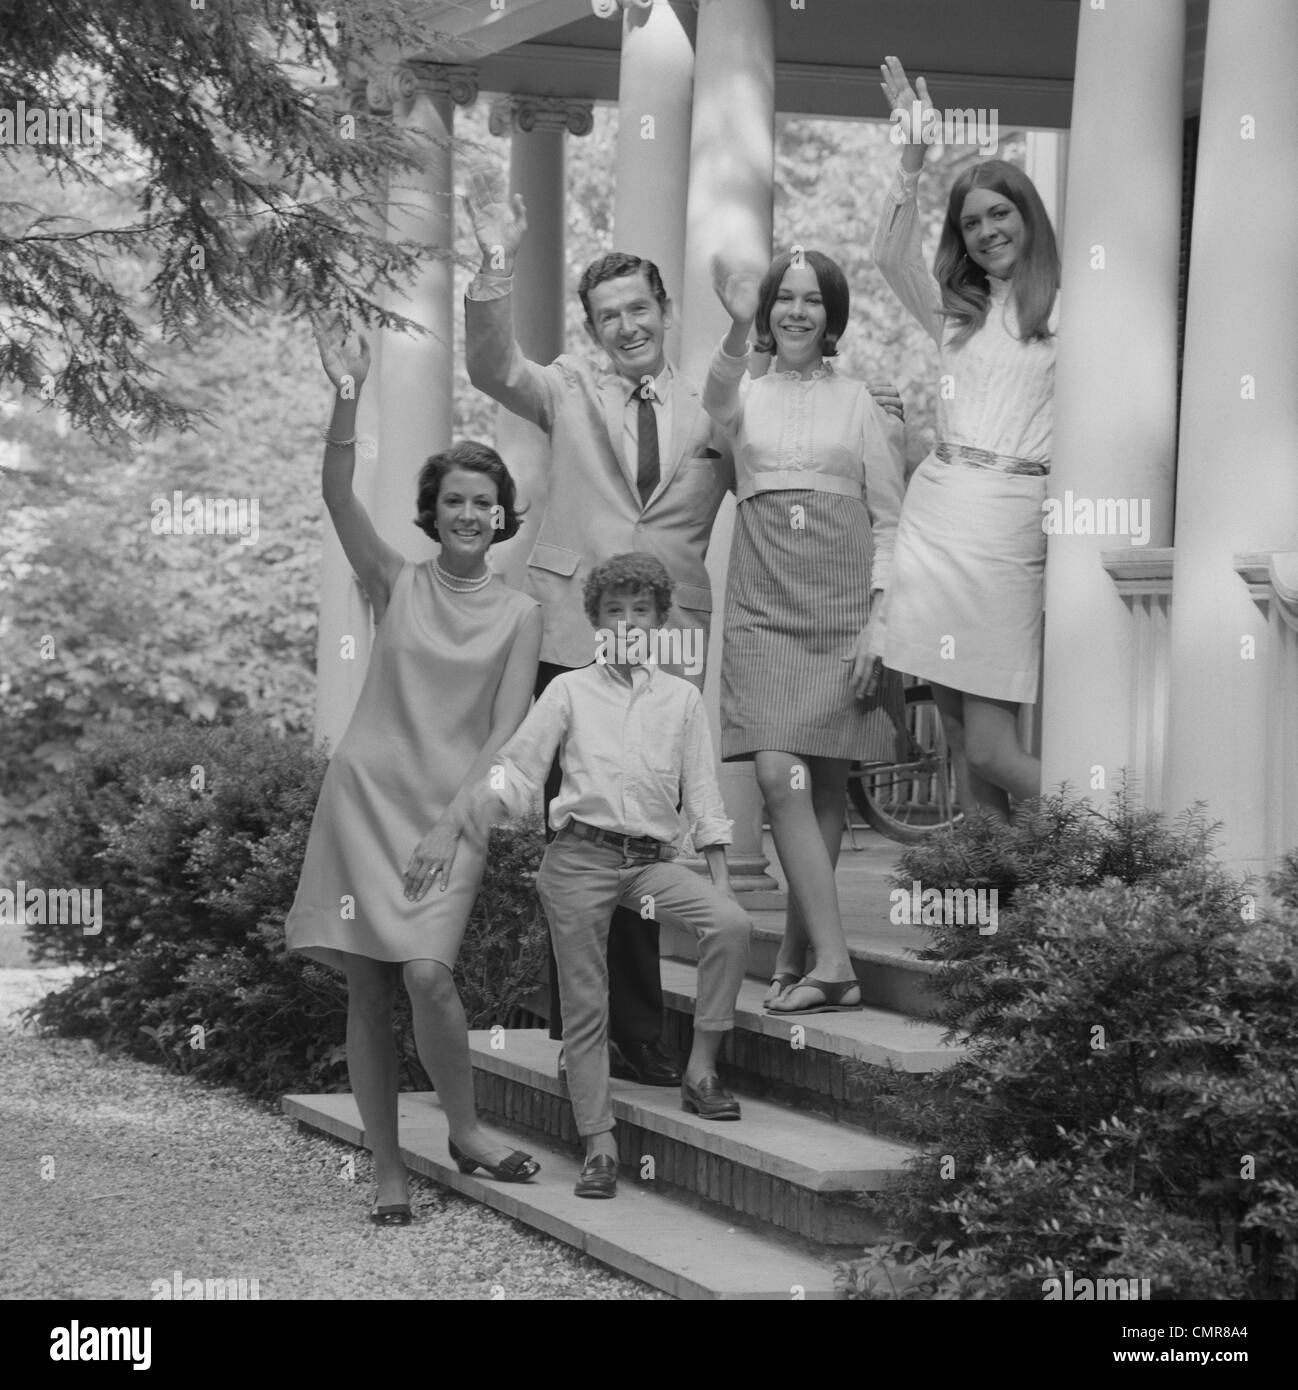 1960s FAMILY GROUP OF PEOPLE STANDING ON STEPS OF HOUSE WAVING - Stock Image